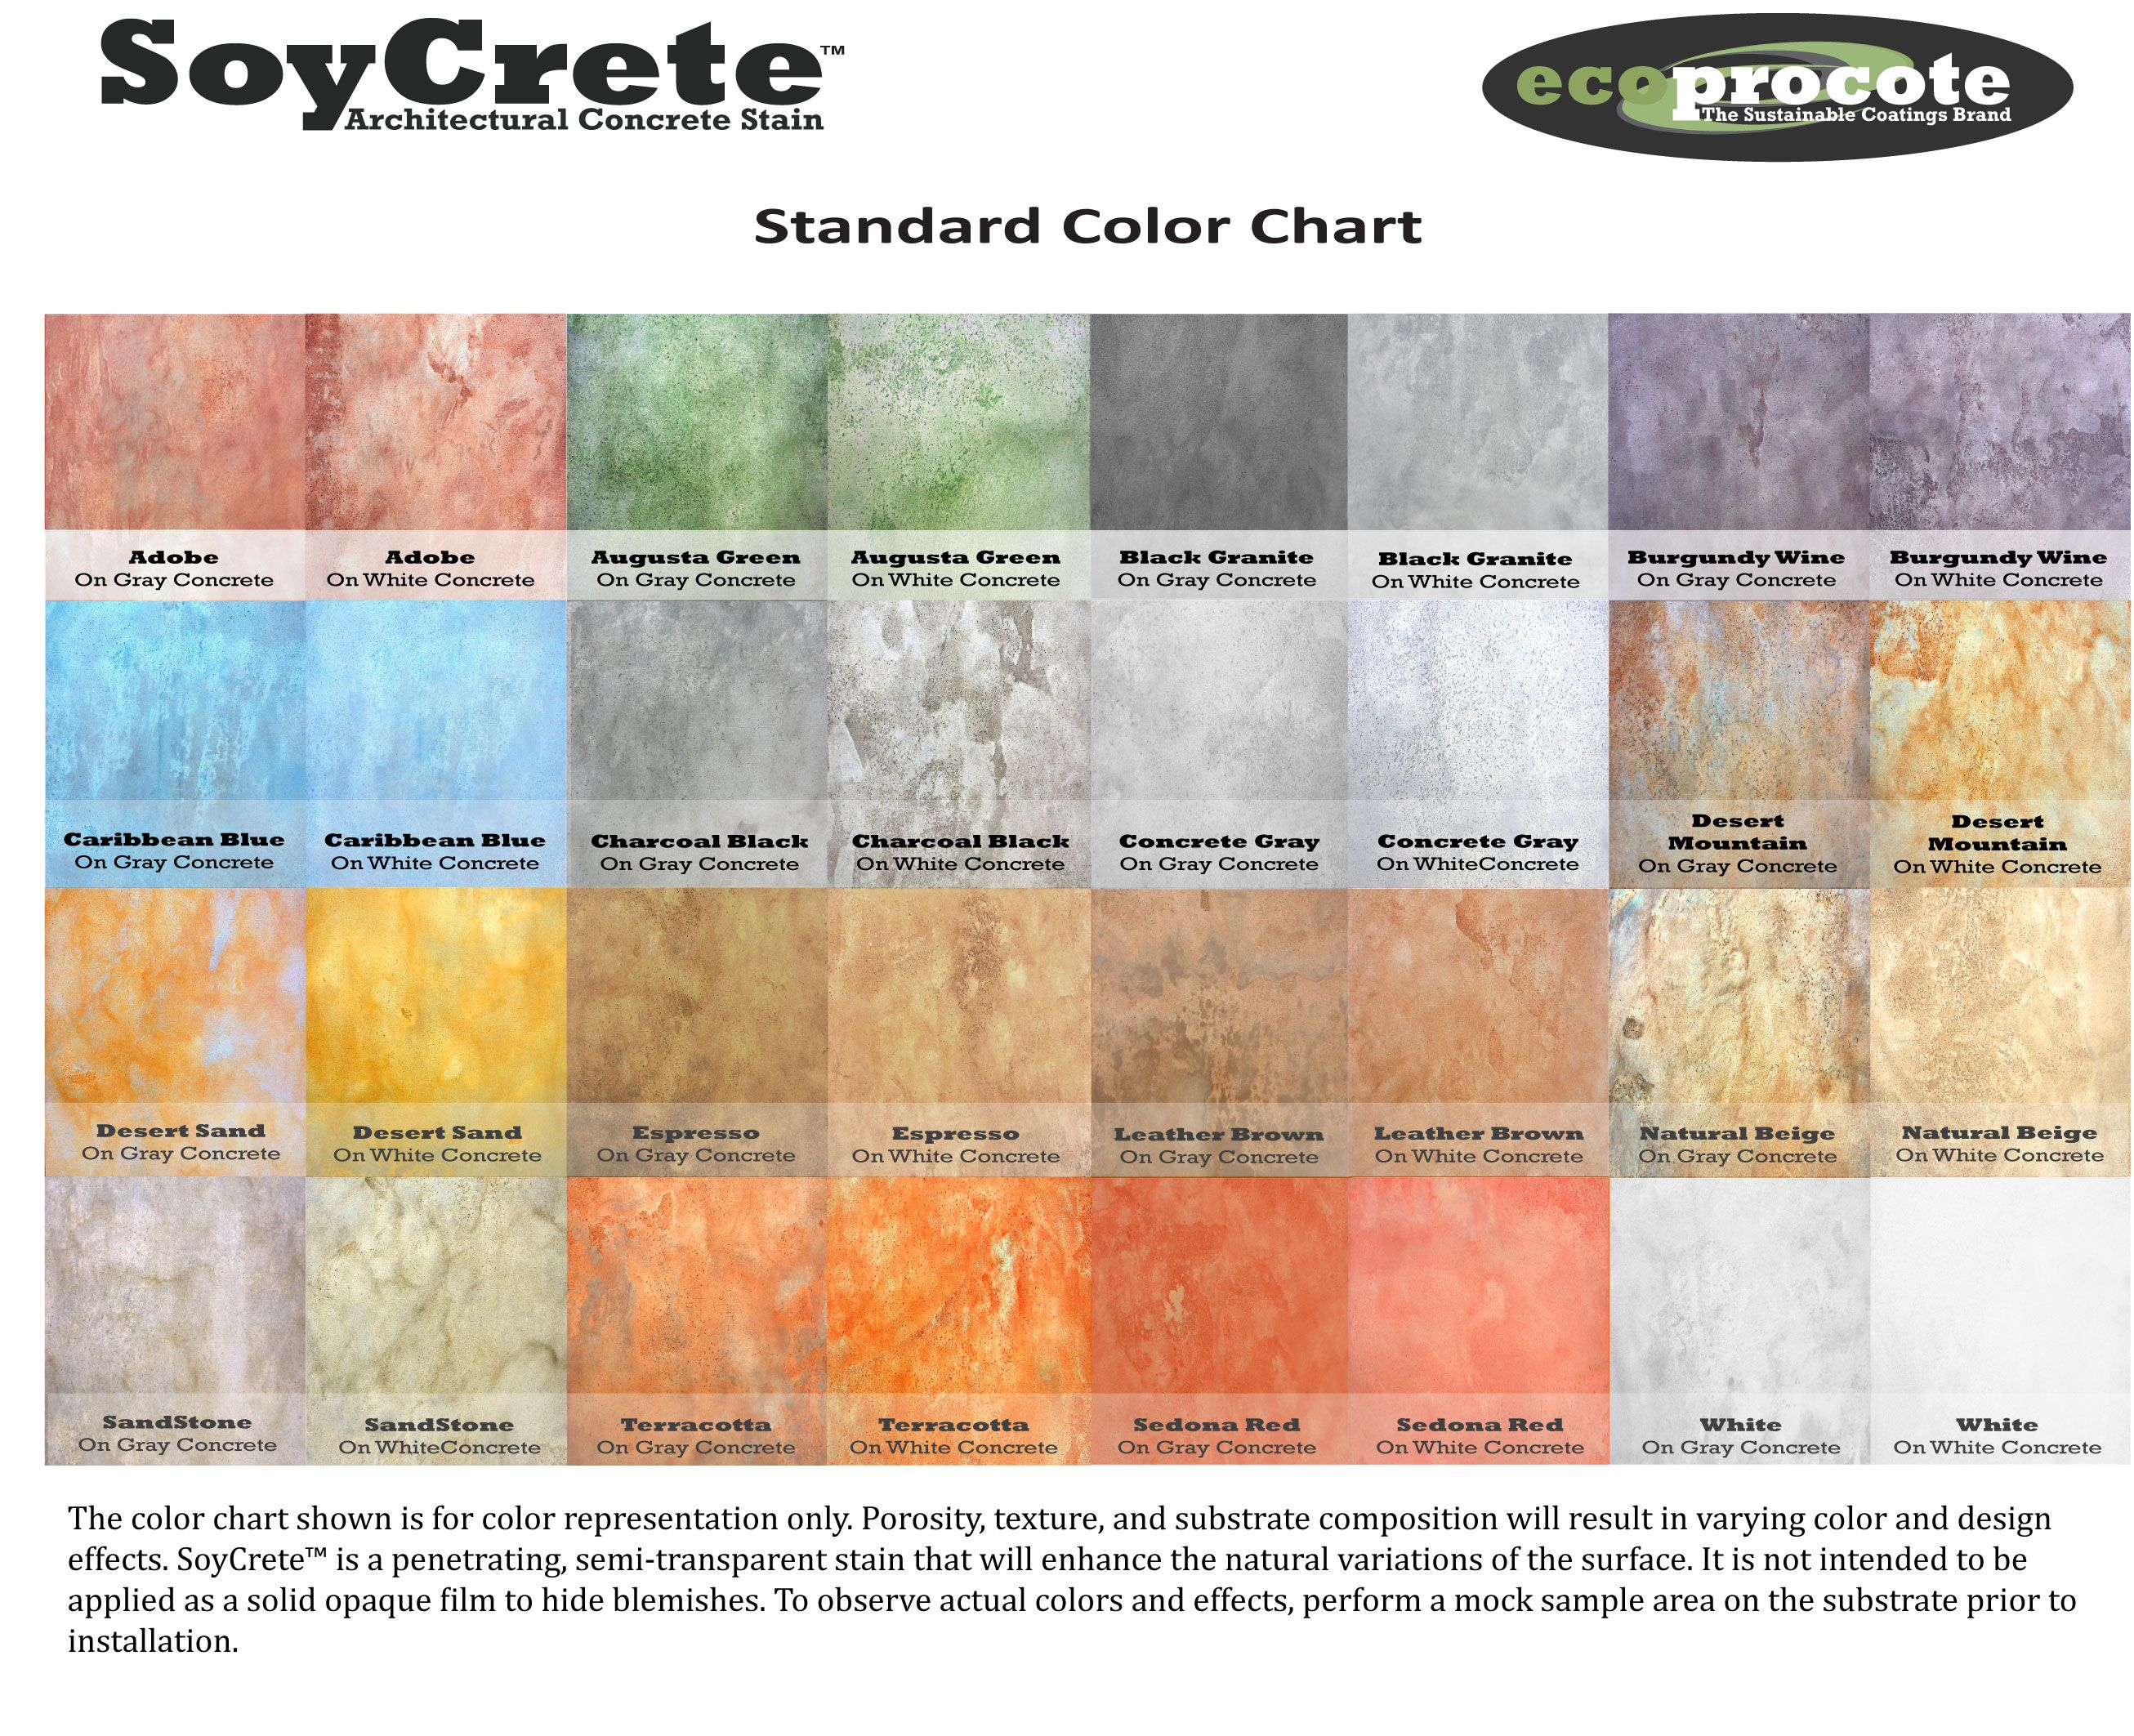 Colored concrete patio pictures soycrete architectural soycrete concrete stain color chart i like the neutrals but it might be nice to do a logo design in the commons in a brighter color nvjuhfo Image collections